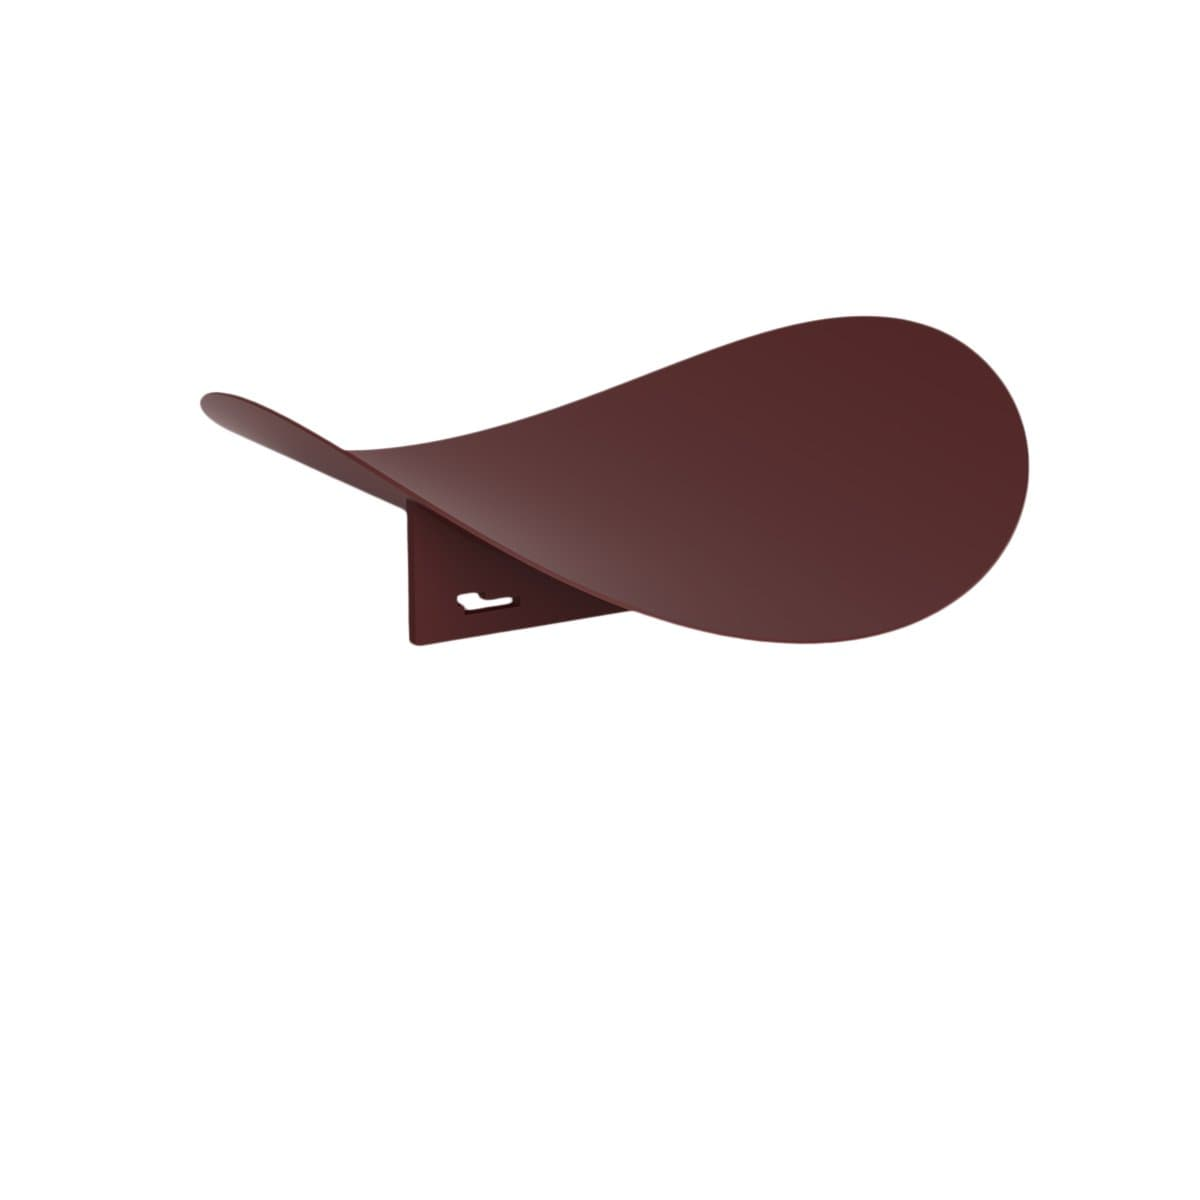 Hue Minimal Decorative Objects Leaf Bordeaux Round Tray